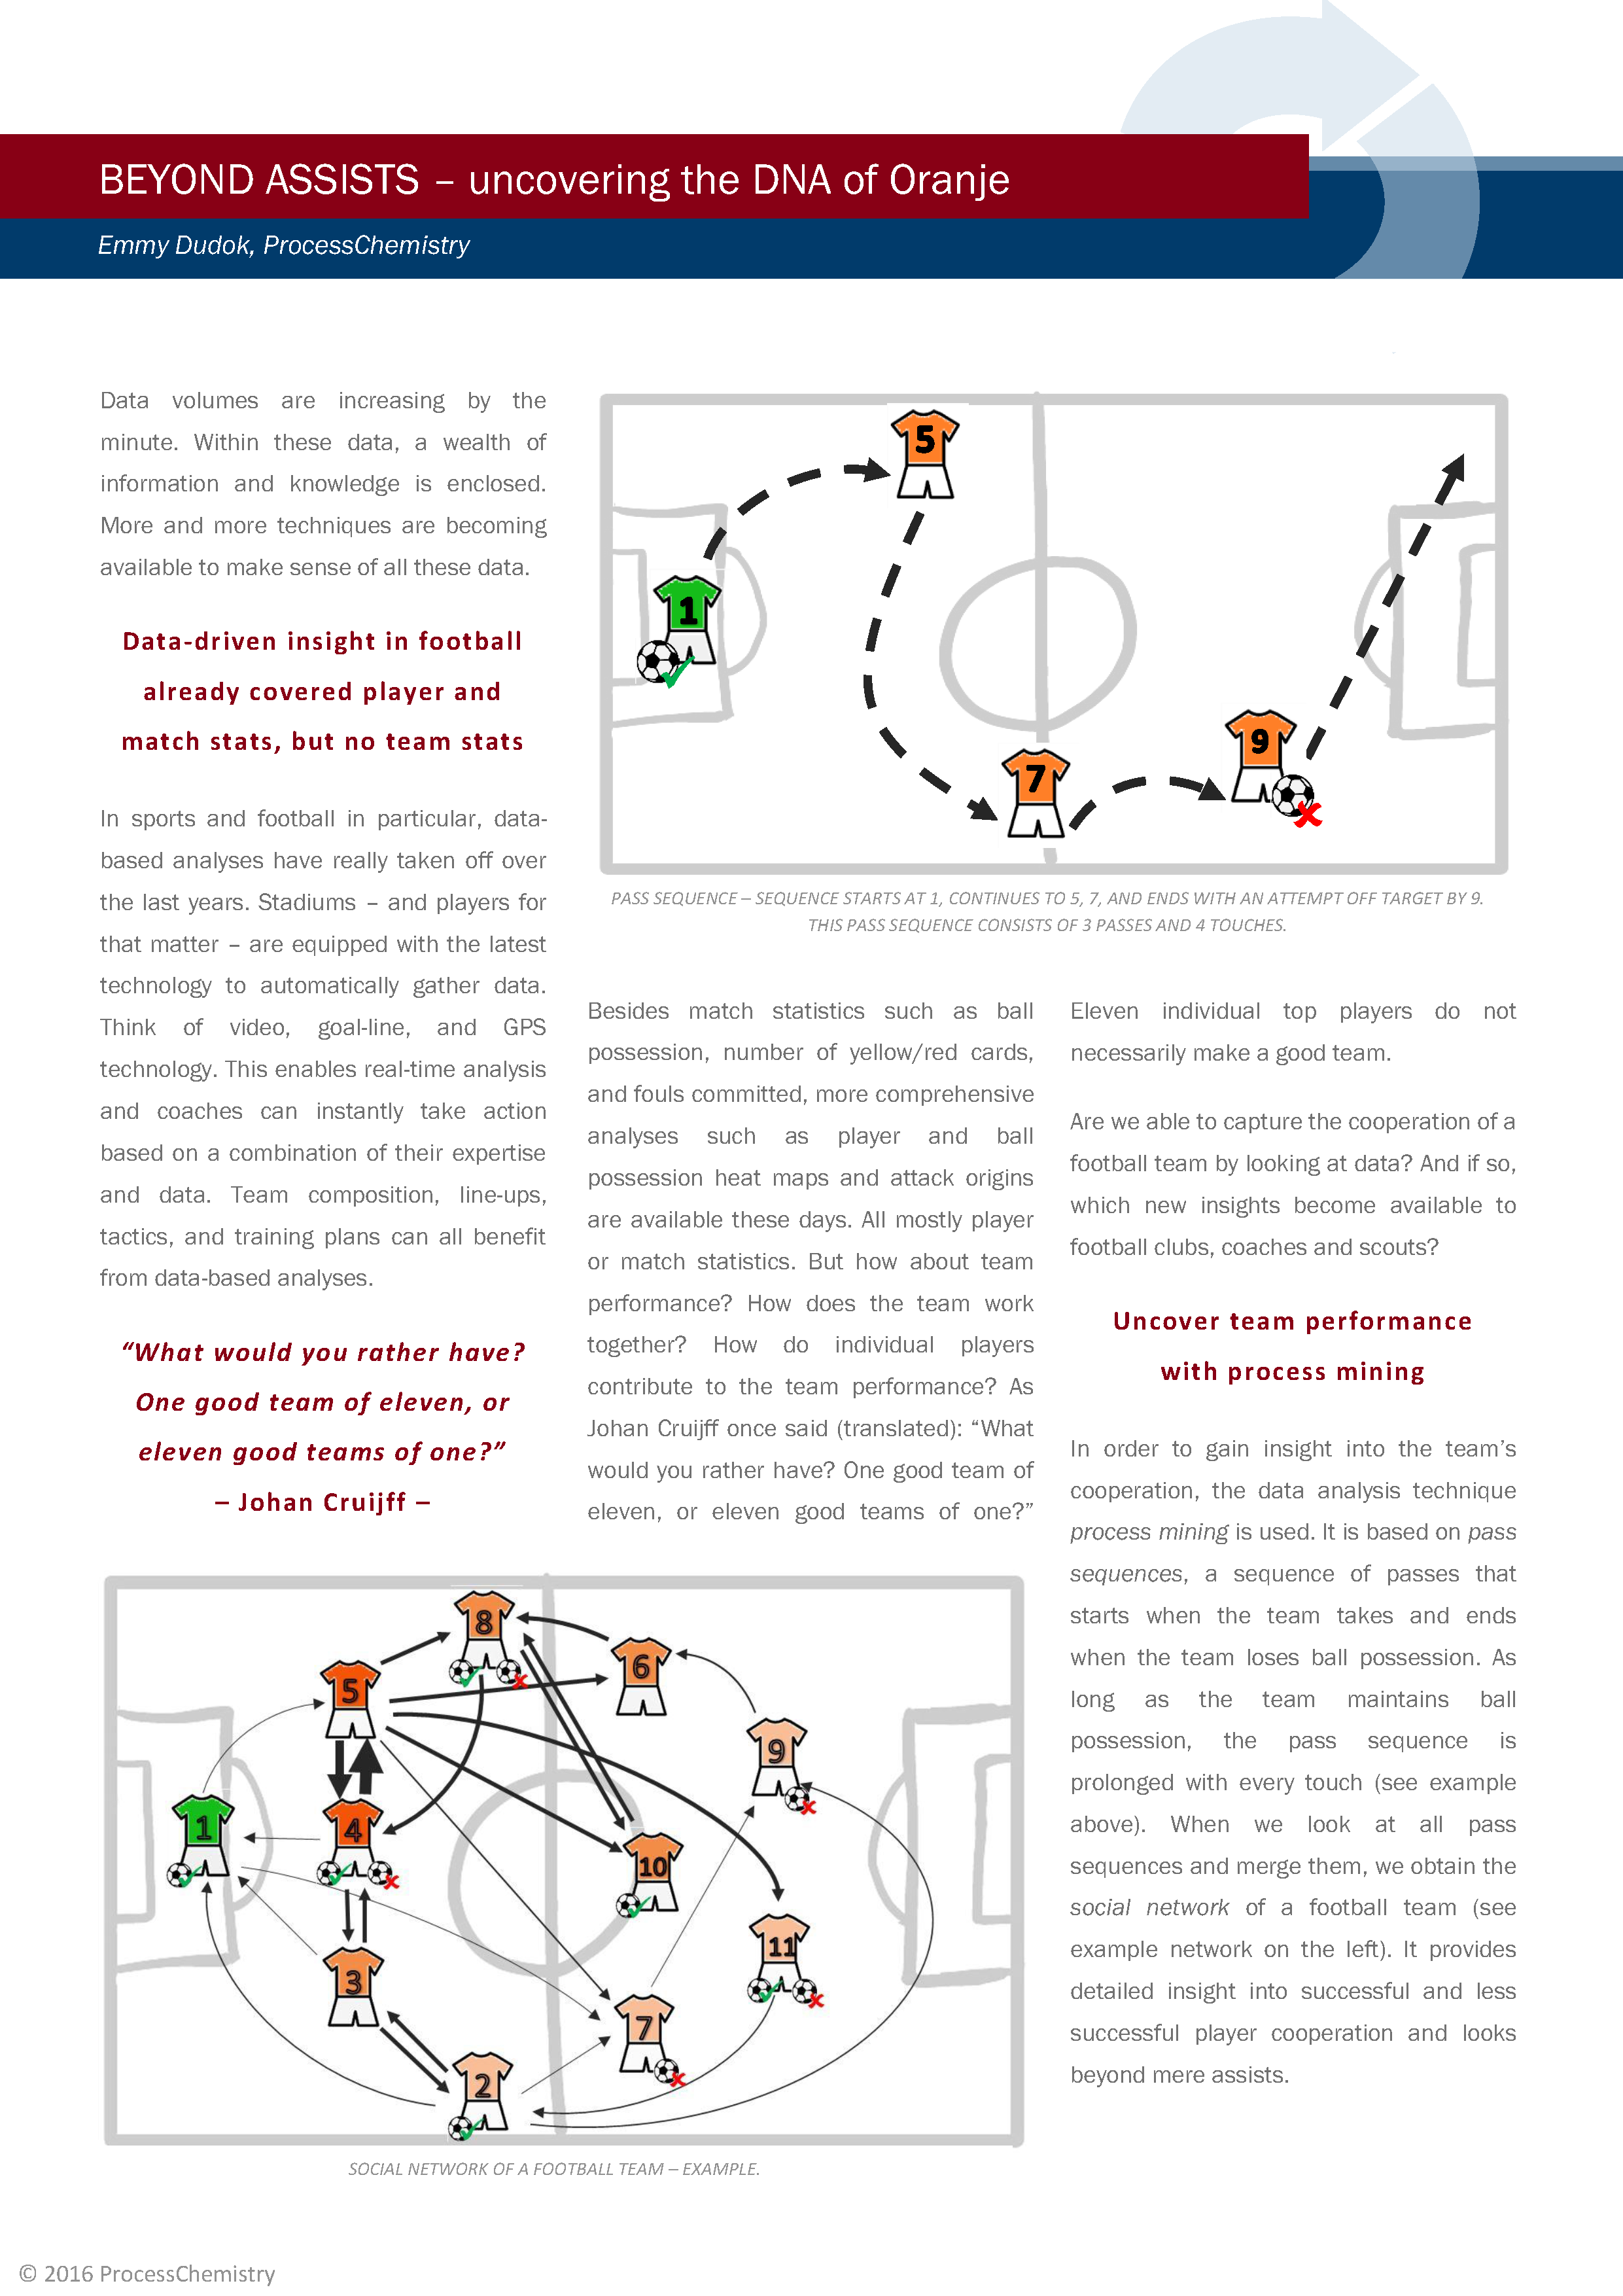 casestudies:en_beyond_assists_-_uncovering_the_dna_of_oranje.png